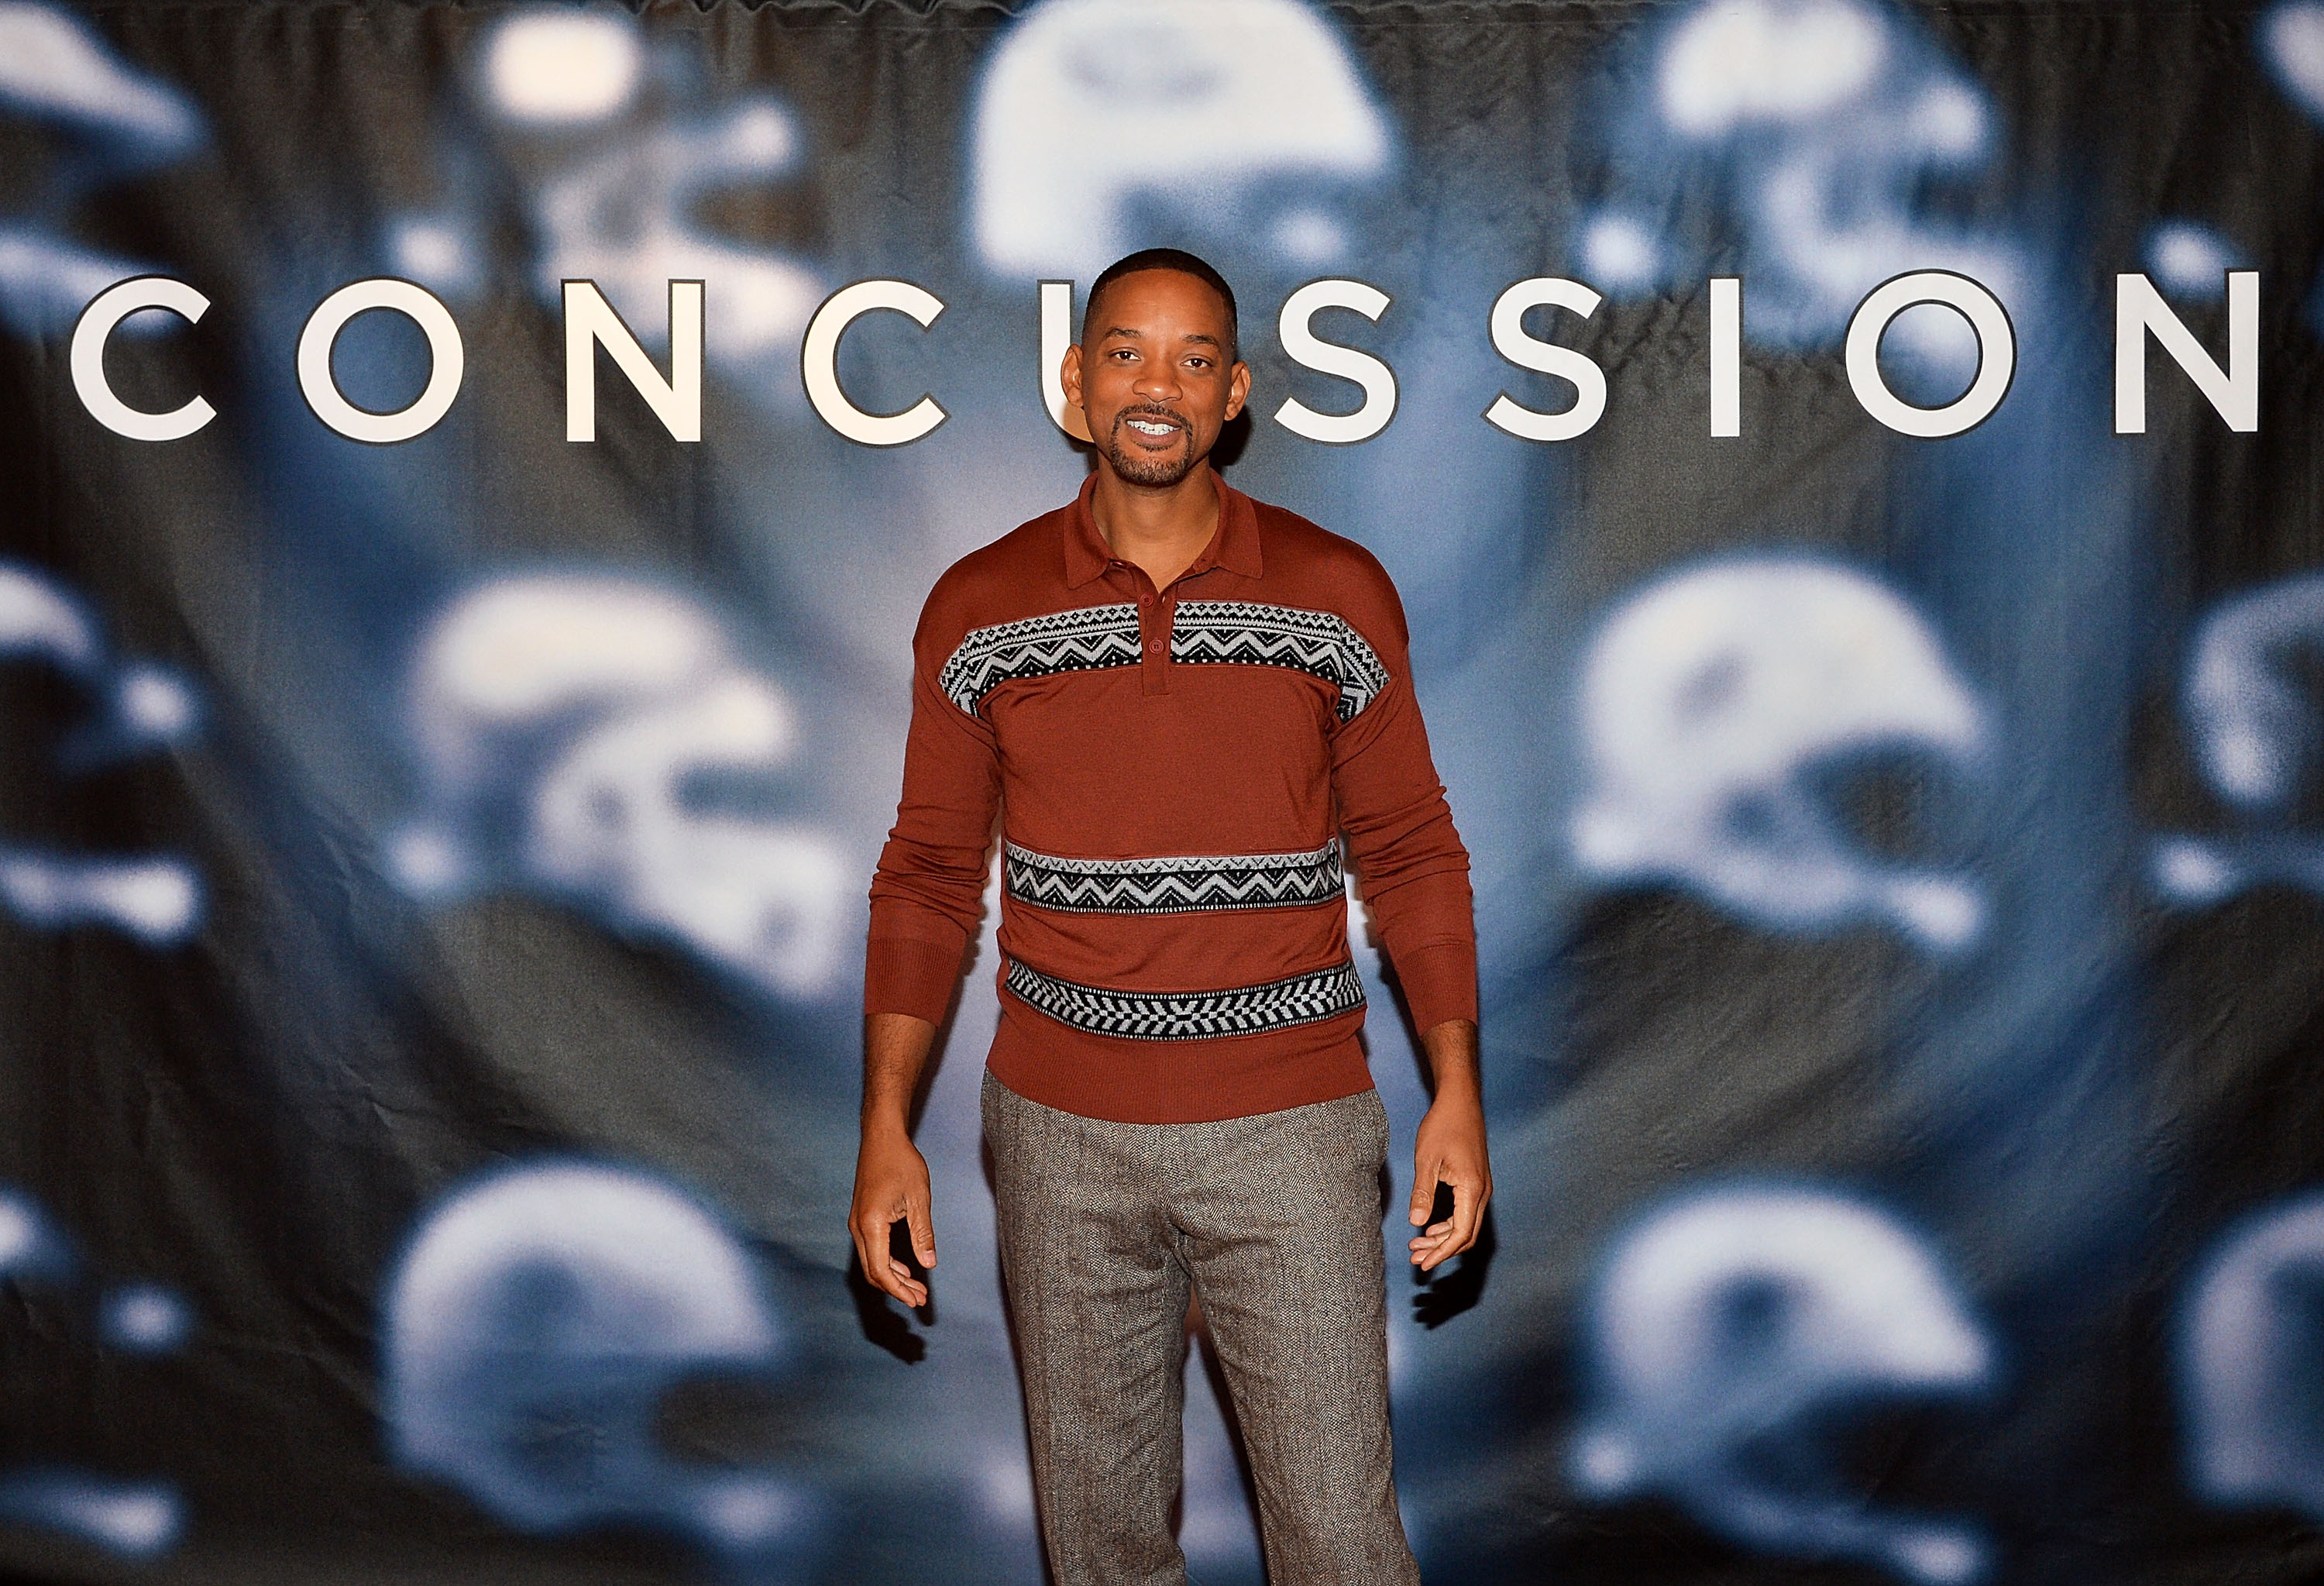 'Concussion' Cast Photo Call